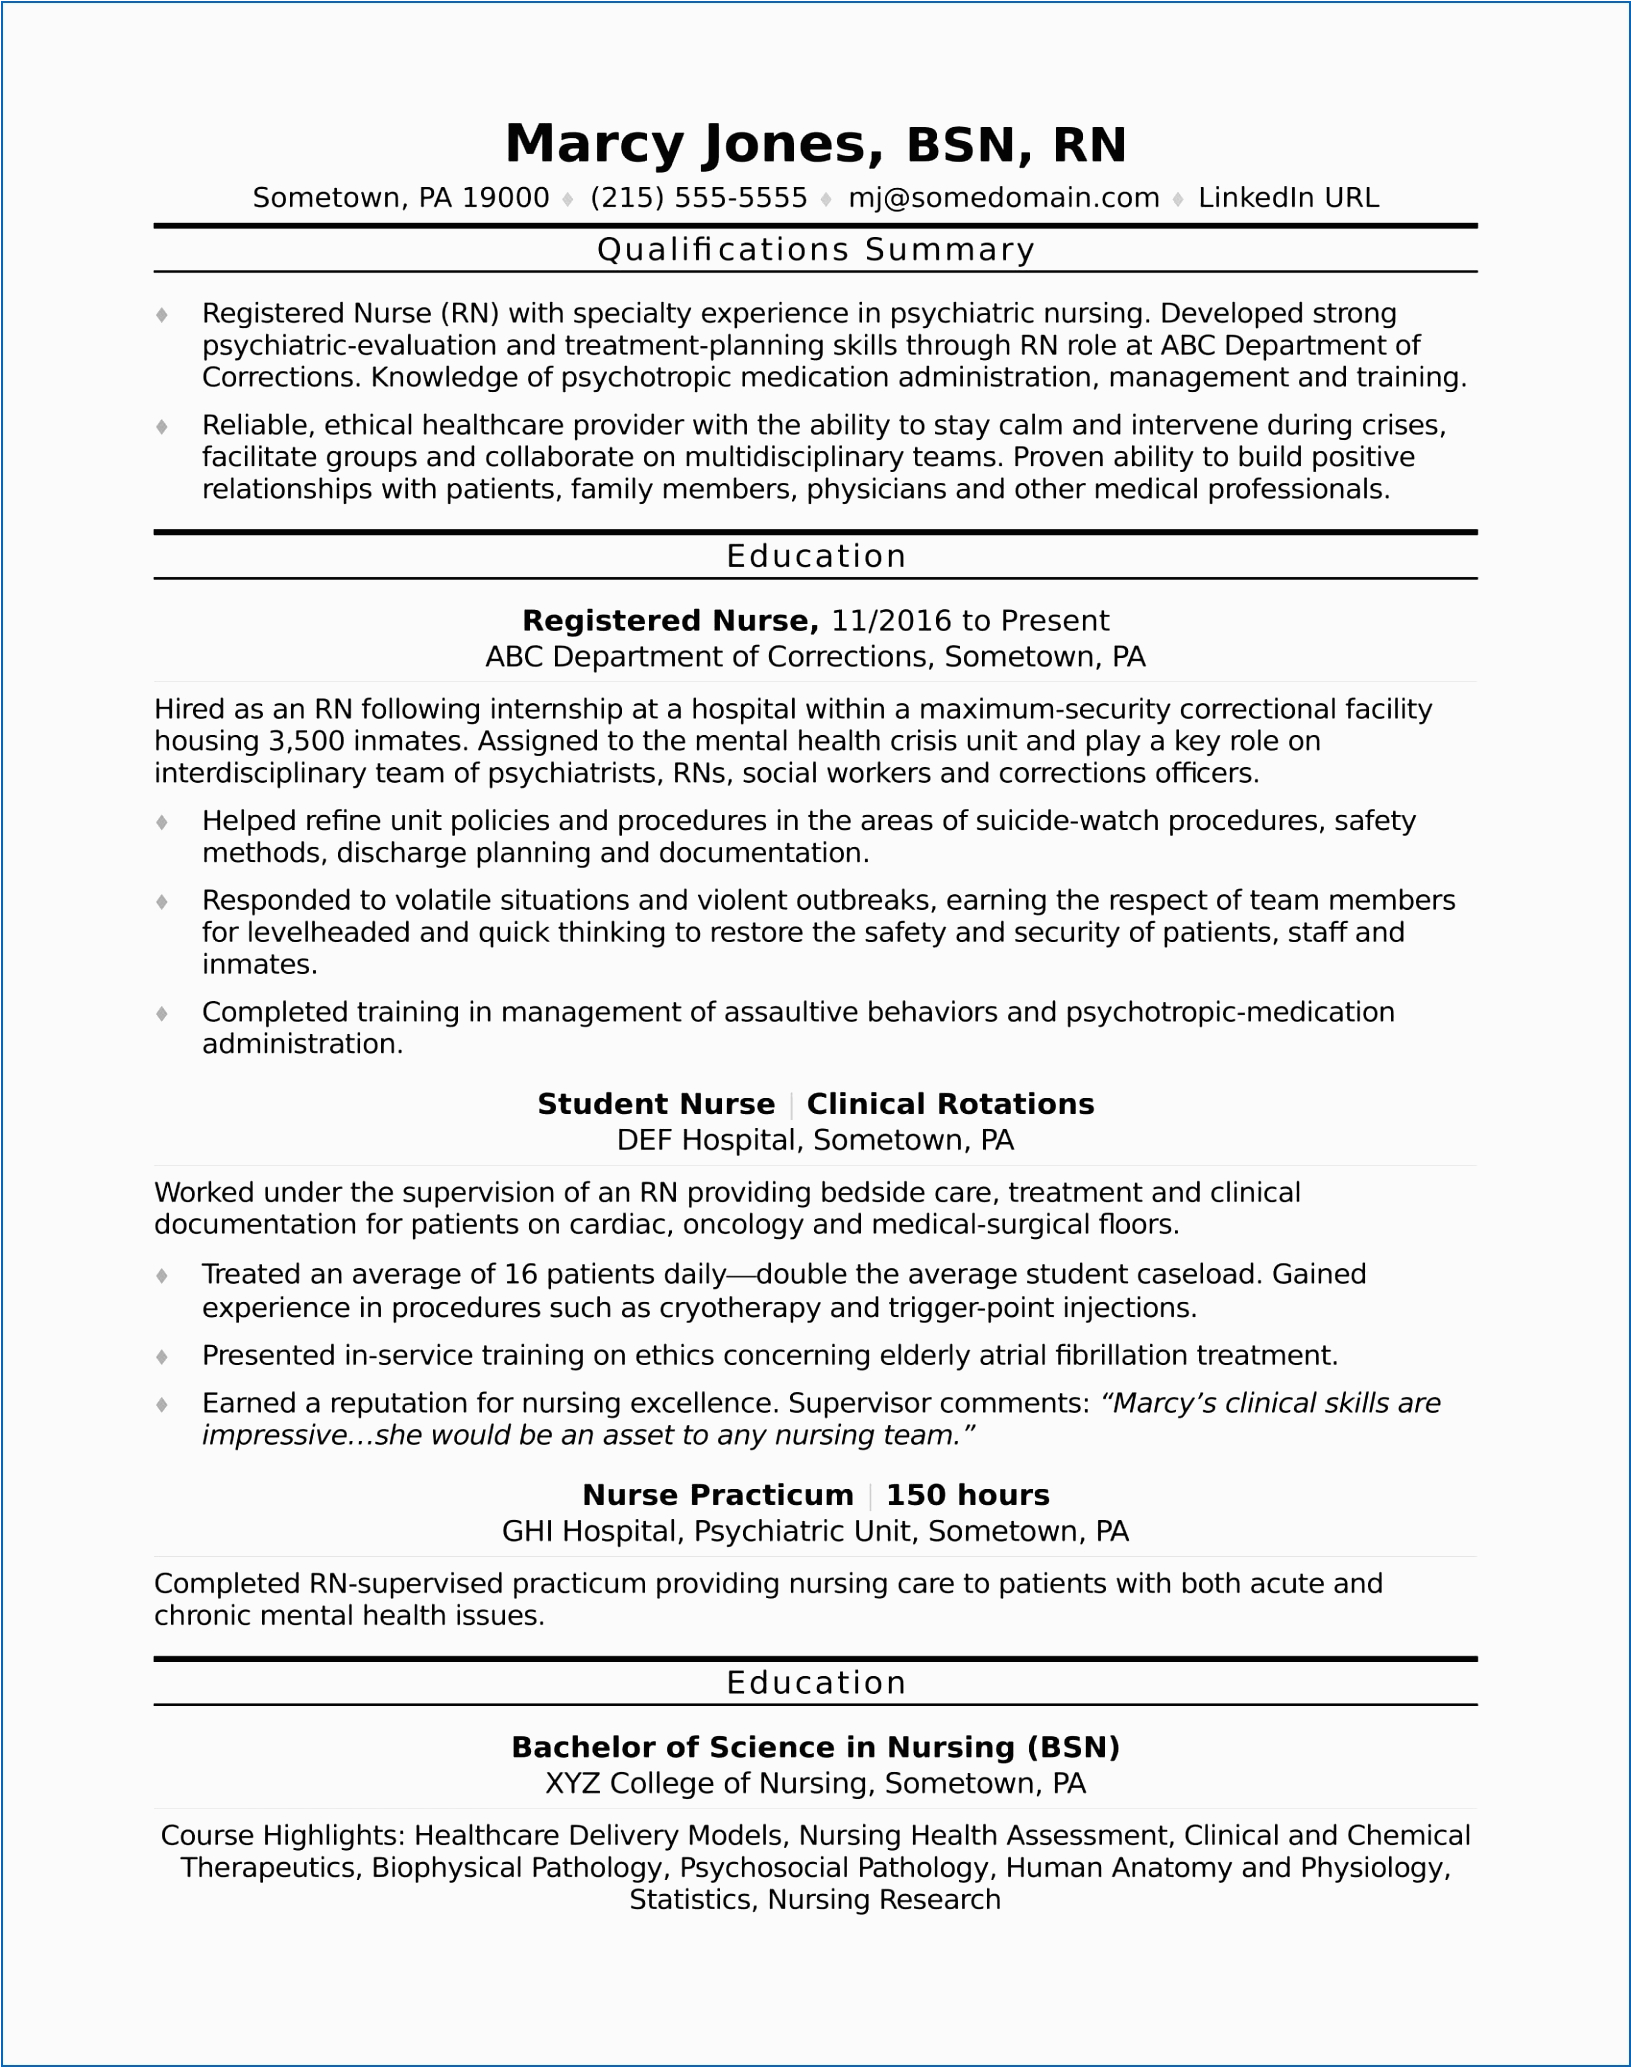 professional summary examples for nurses